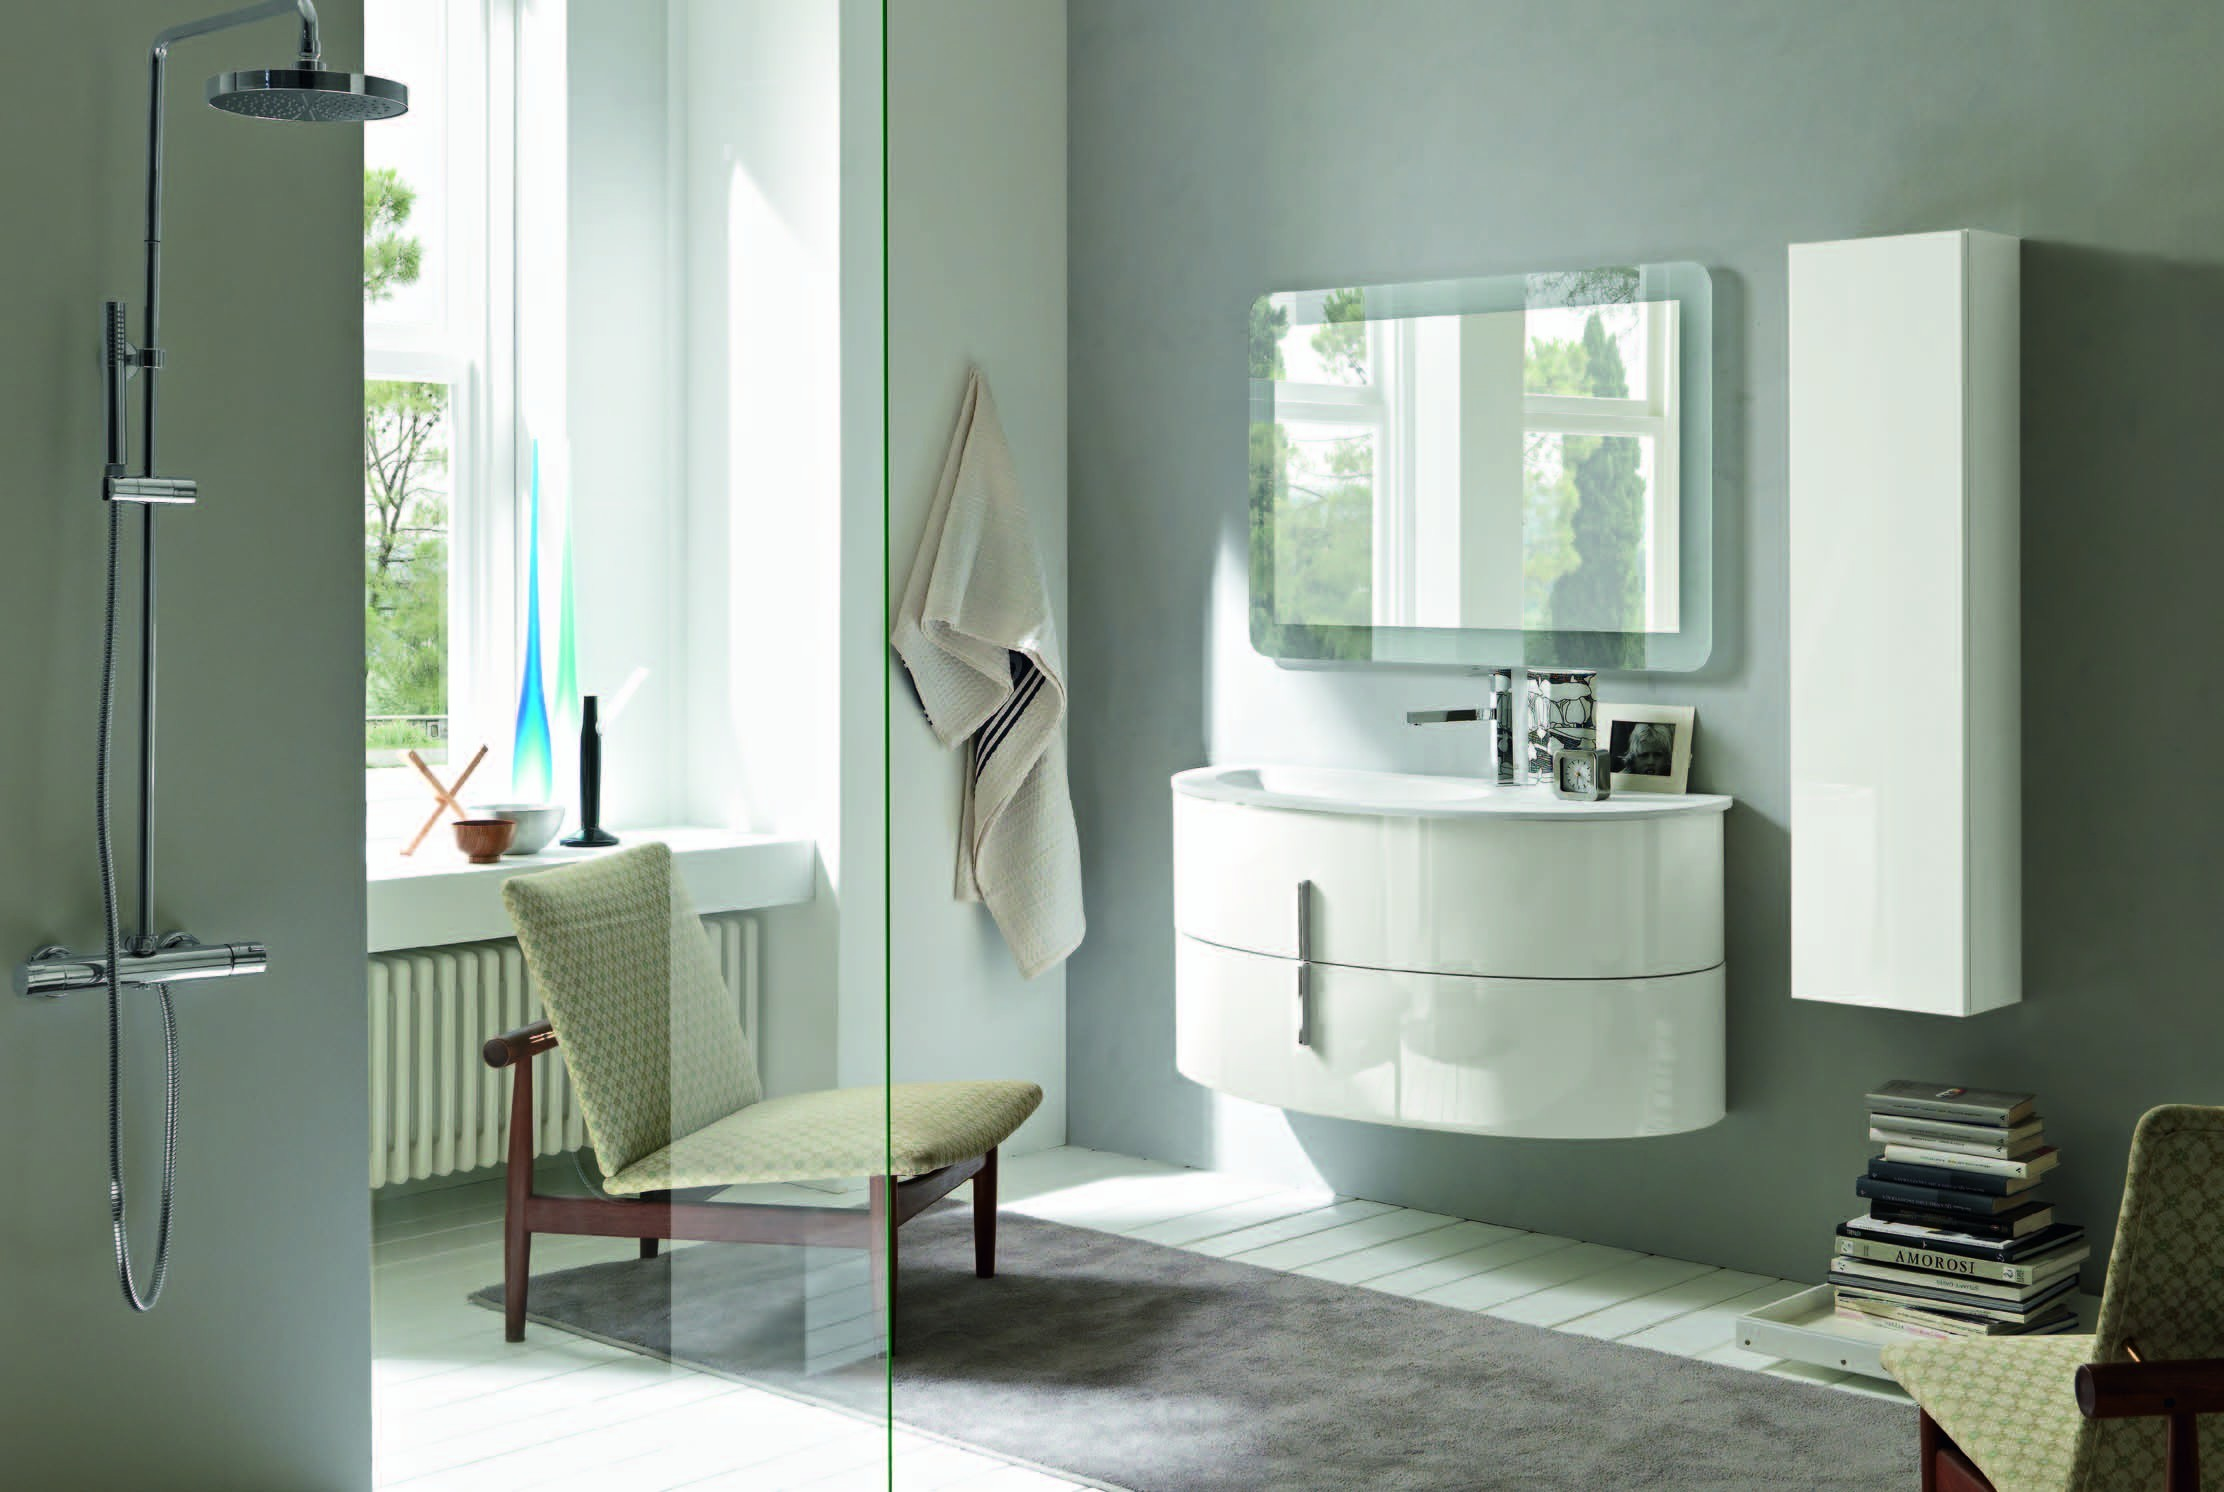 Mobile bagno design ovale con base lavello e colonna for Mobile bagno colonna